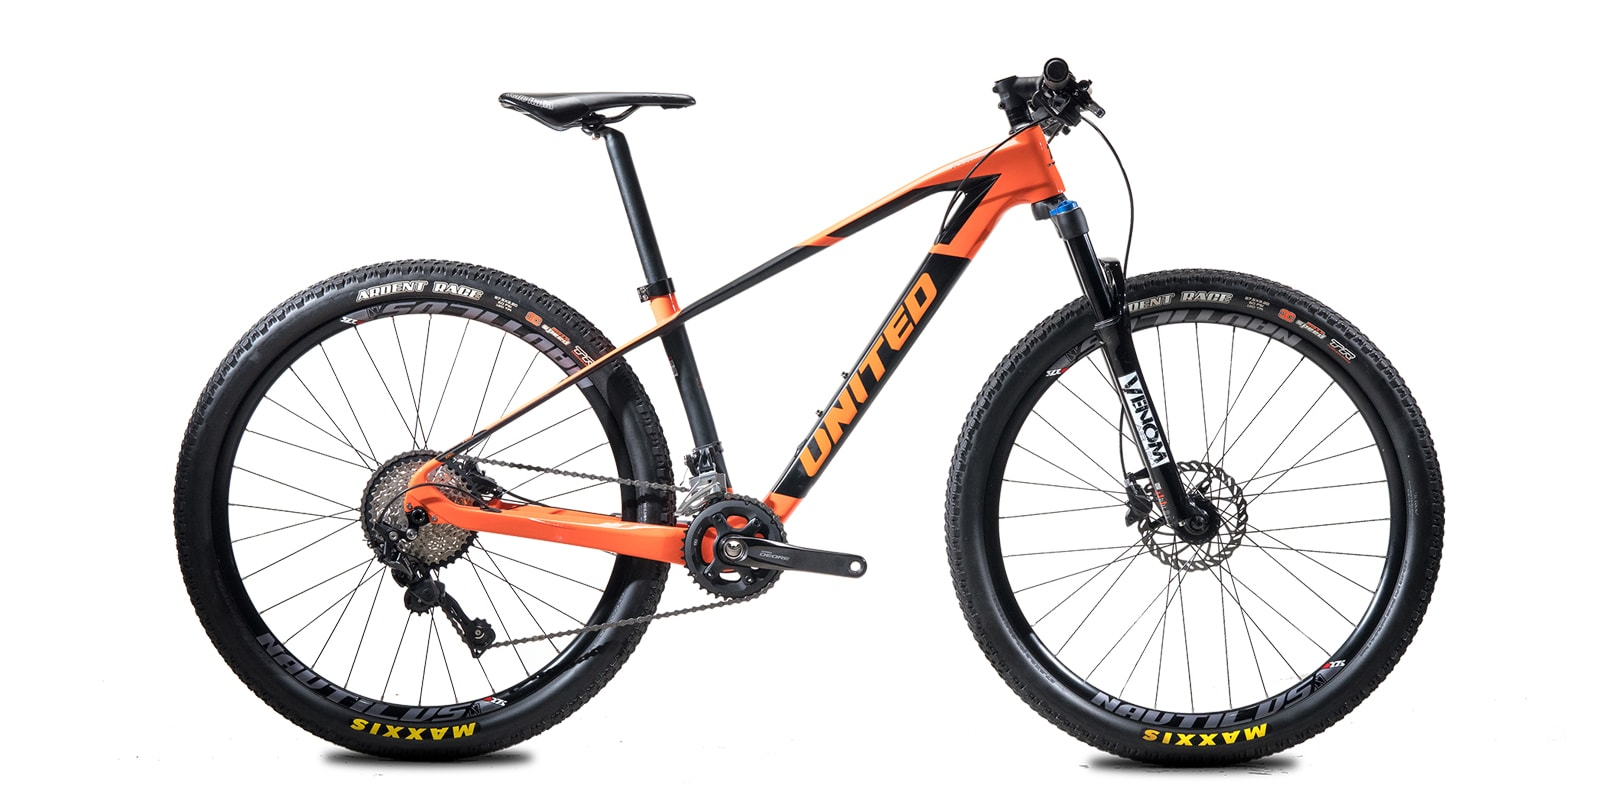 Sepeda Gunung United Cross Country Hardtail Kyross 1.00 (9) 2019